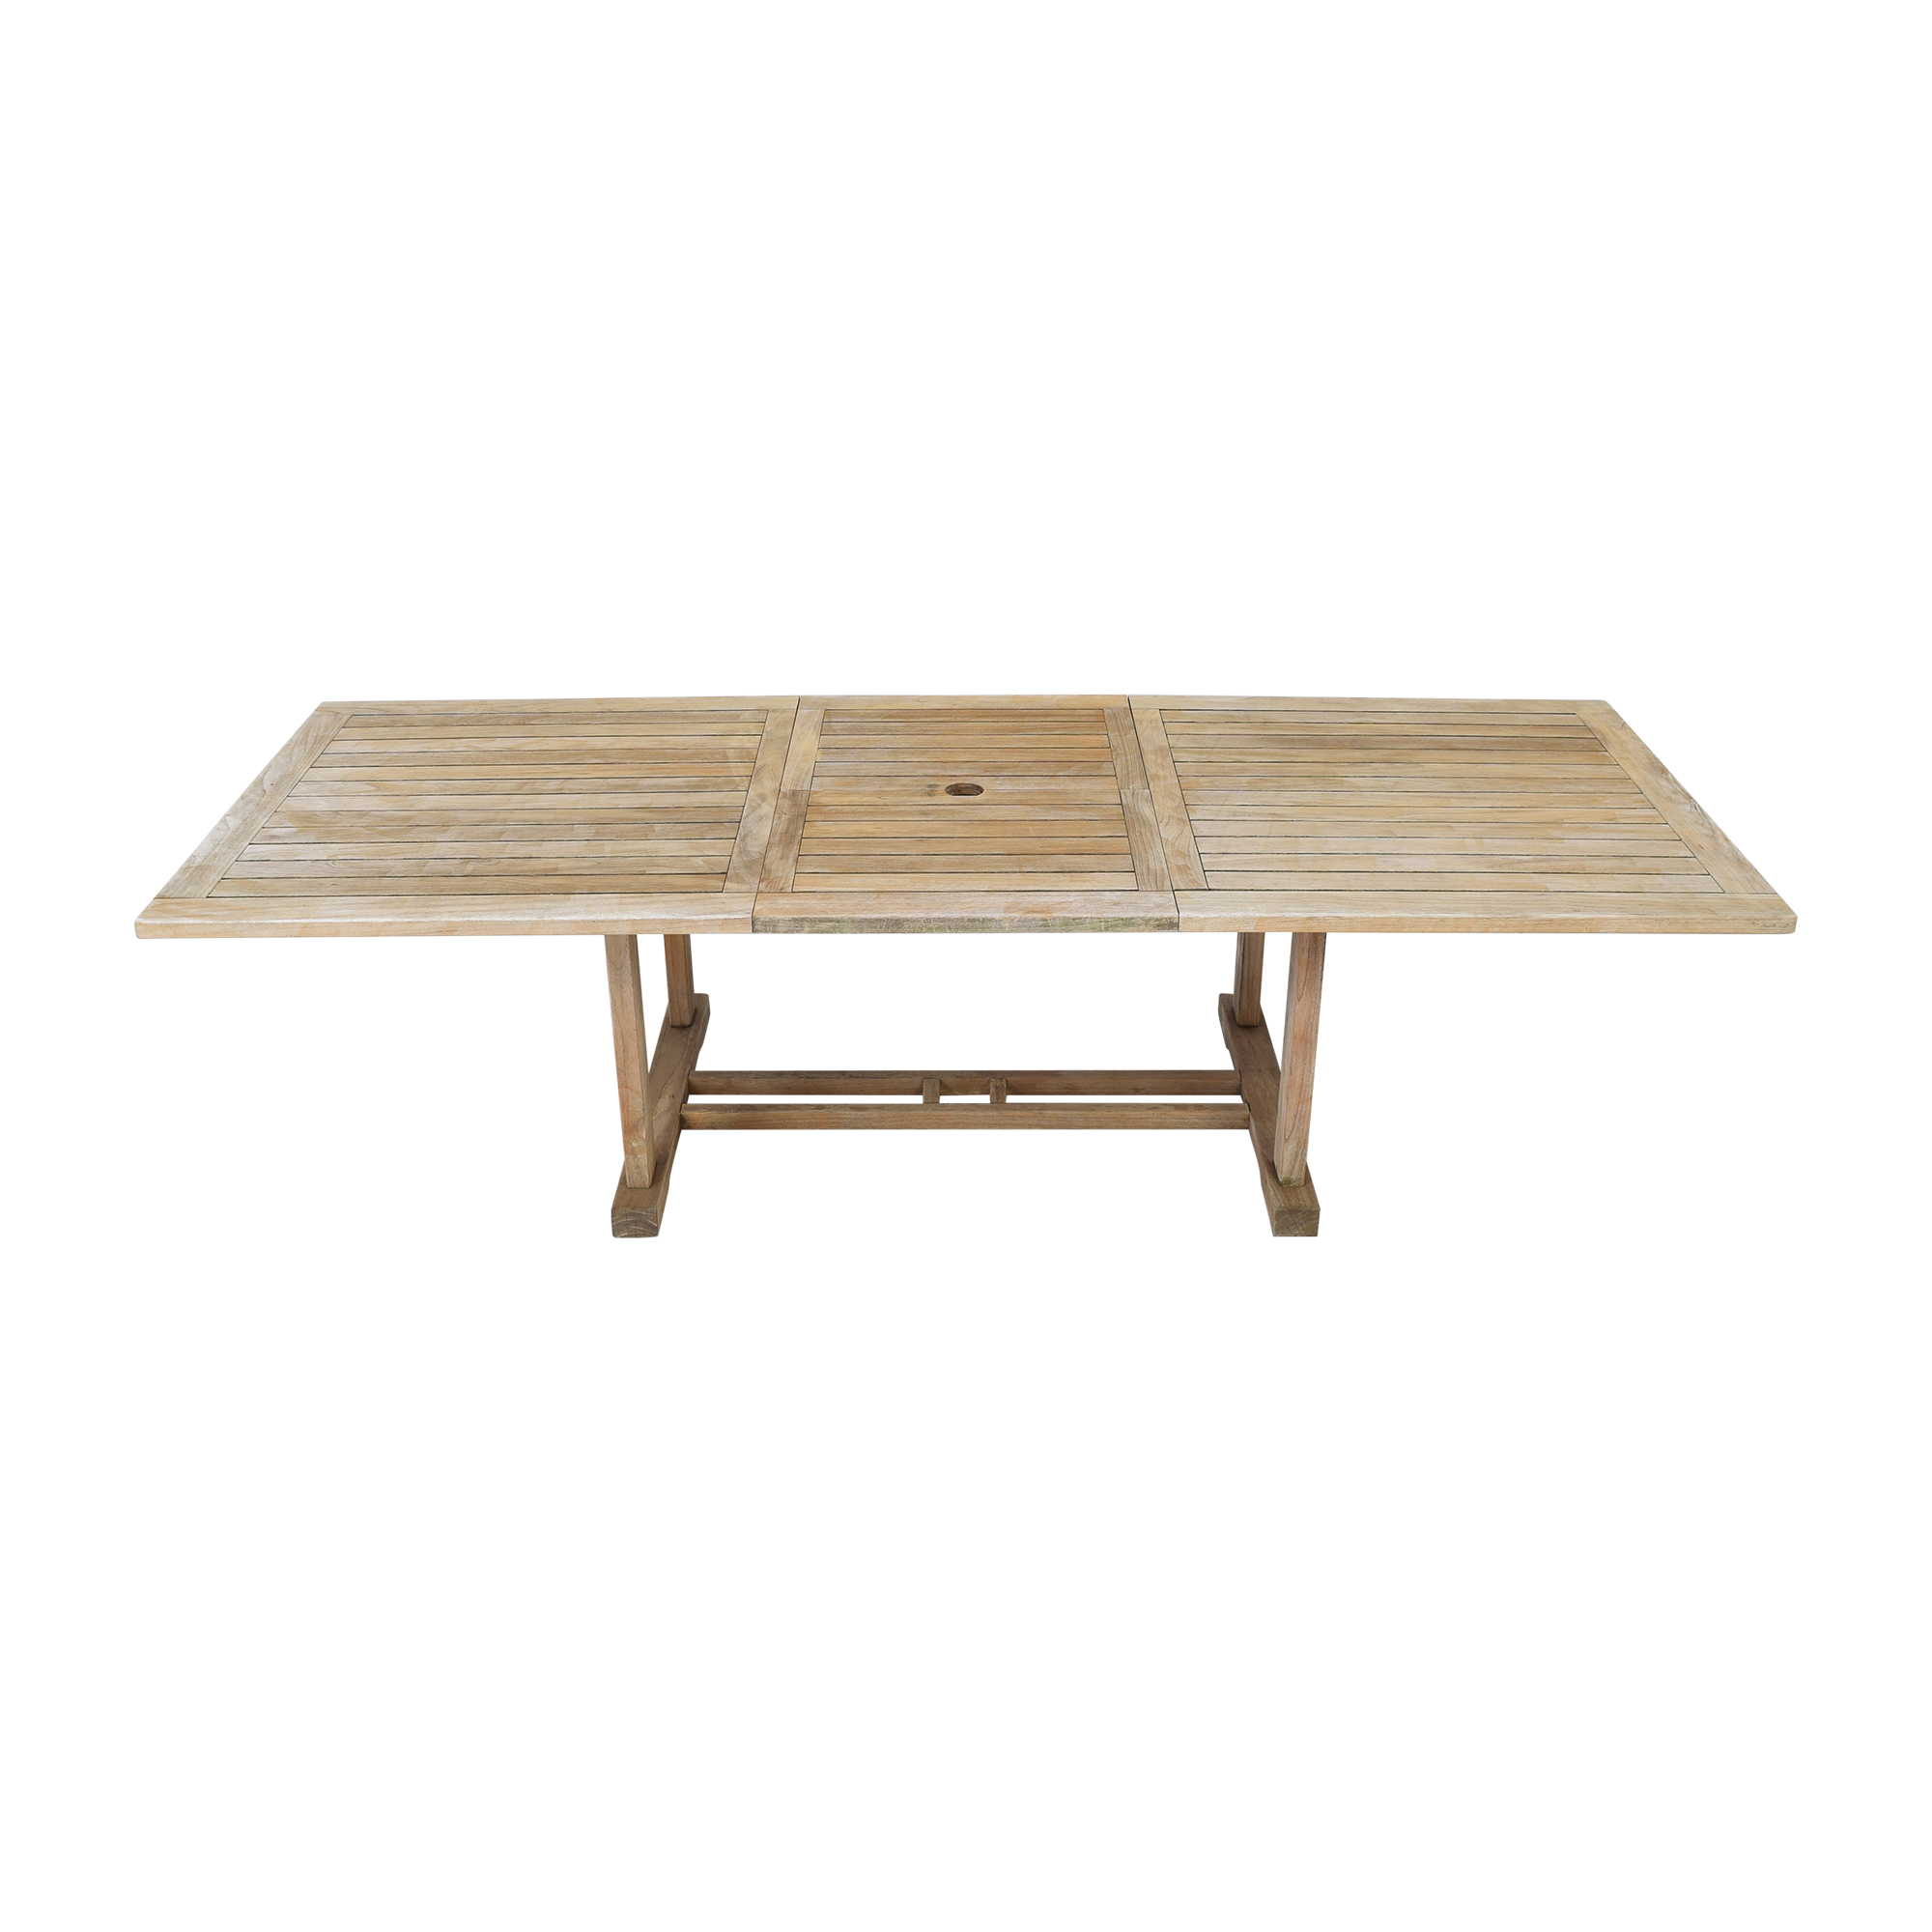 Gloster Gloster Rustic Dining Table price